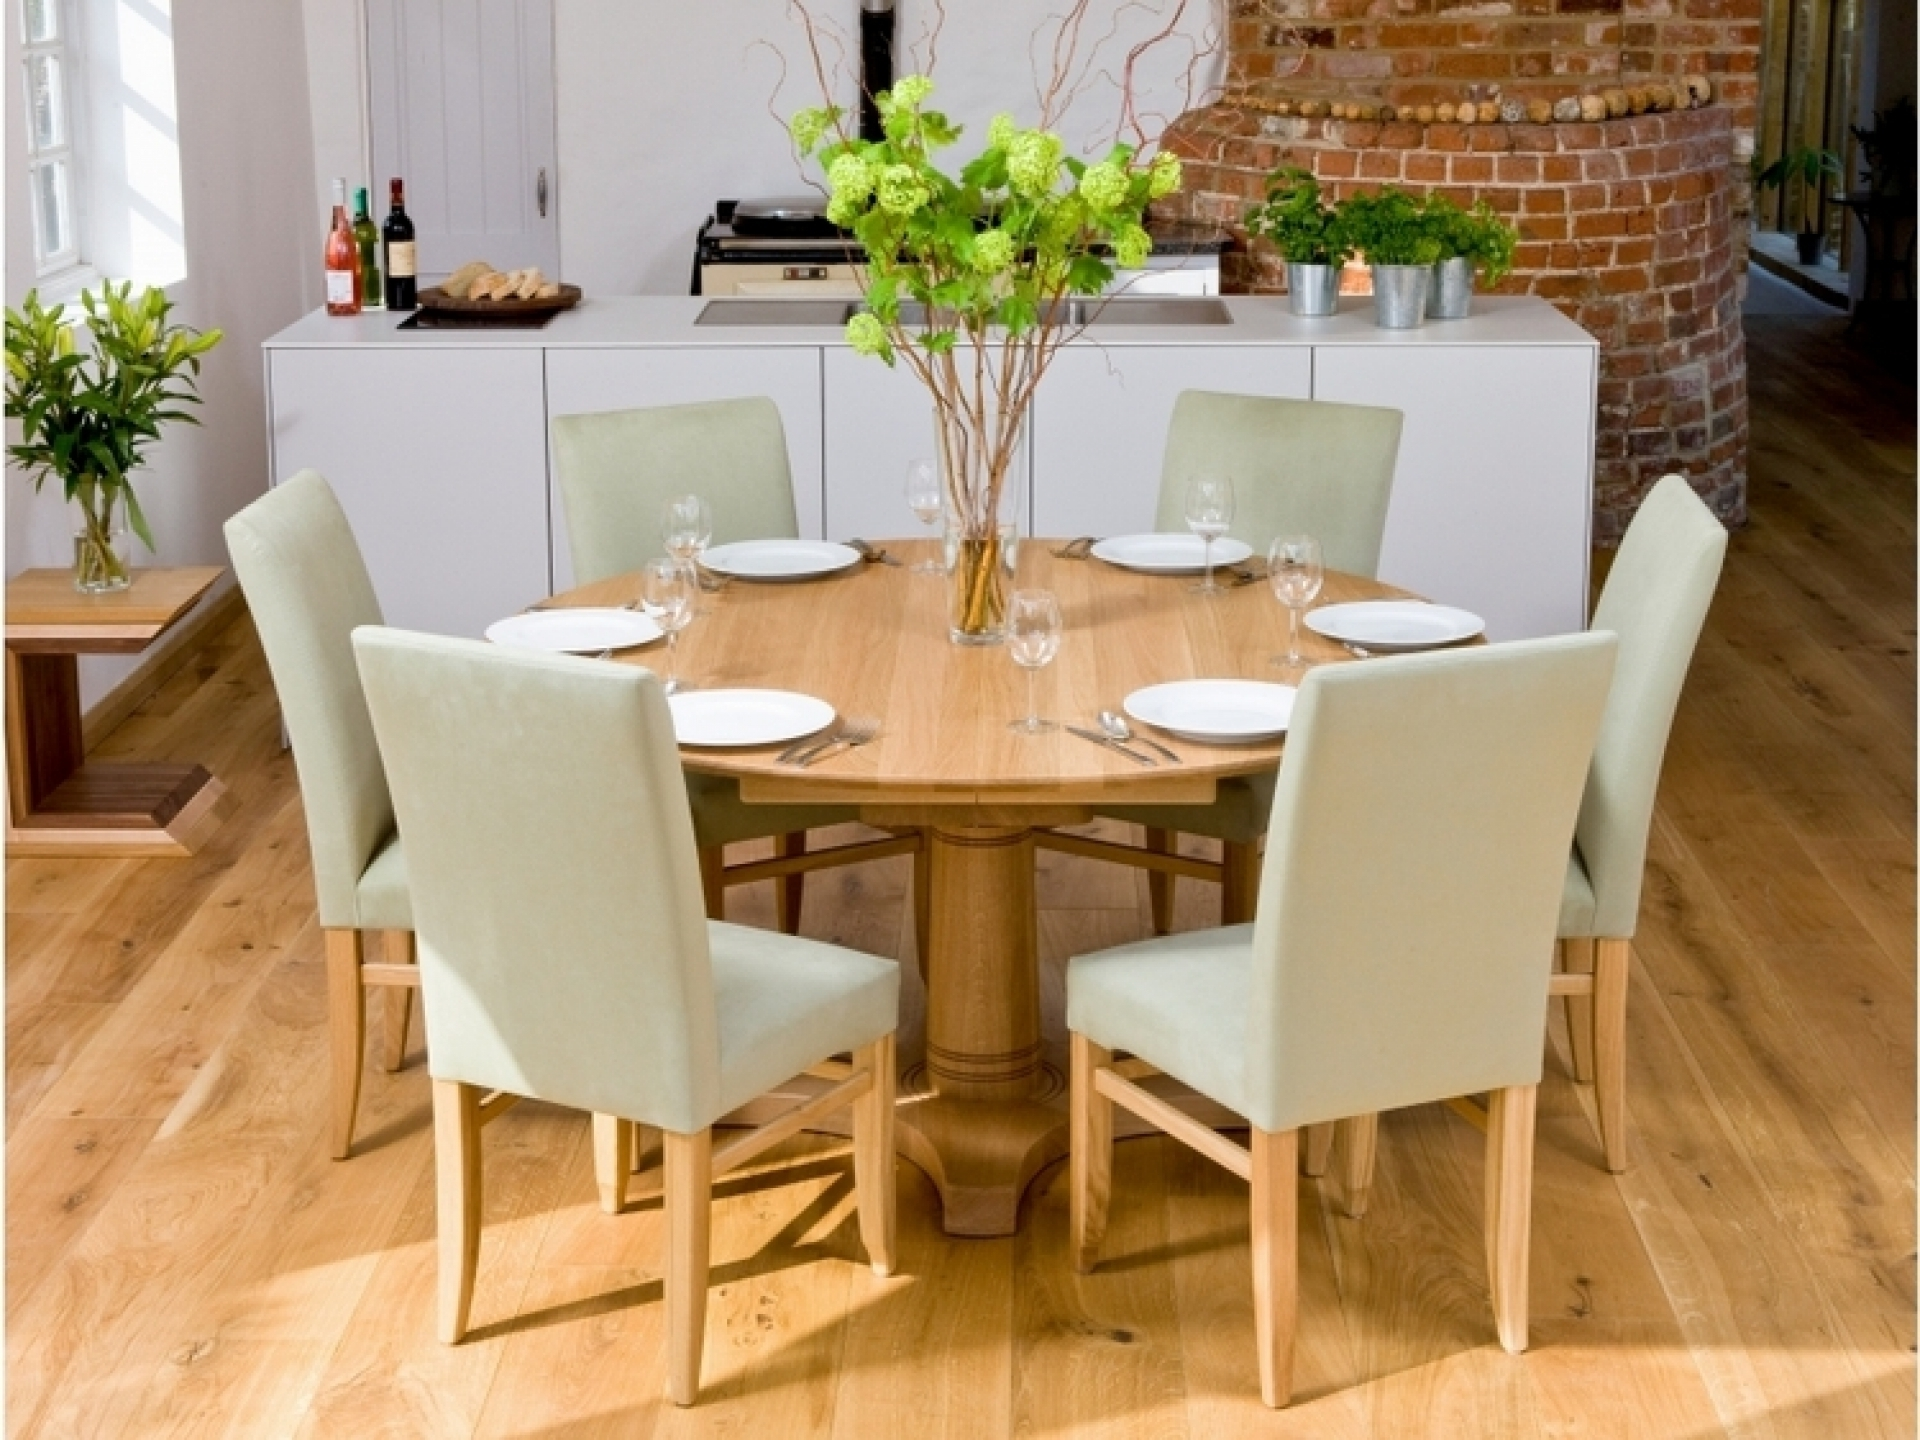 Candice Ii Round Dining Tables Throughout Most Current Decorating Nice Dining Table Set 6 Seater And House Beautiful Rooms (View 6 of 25)